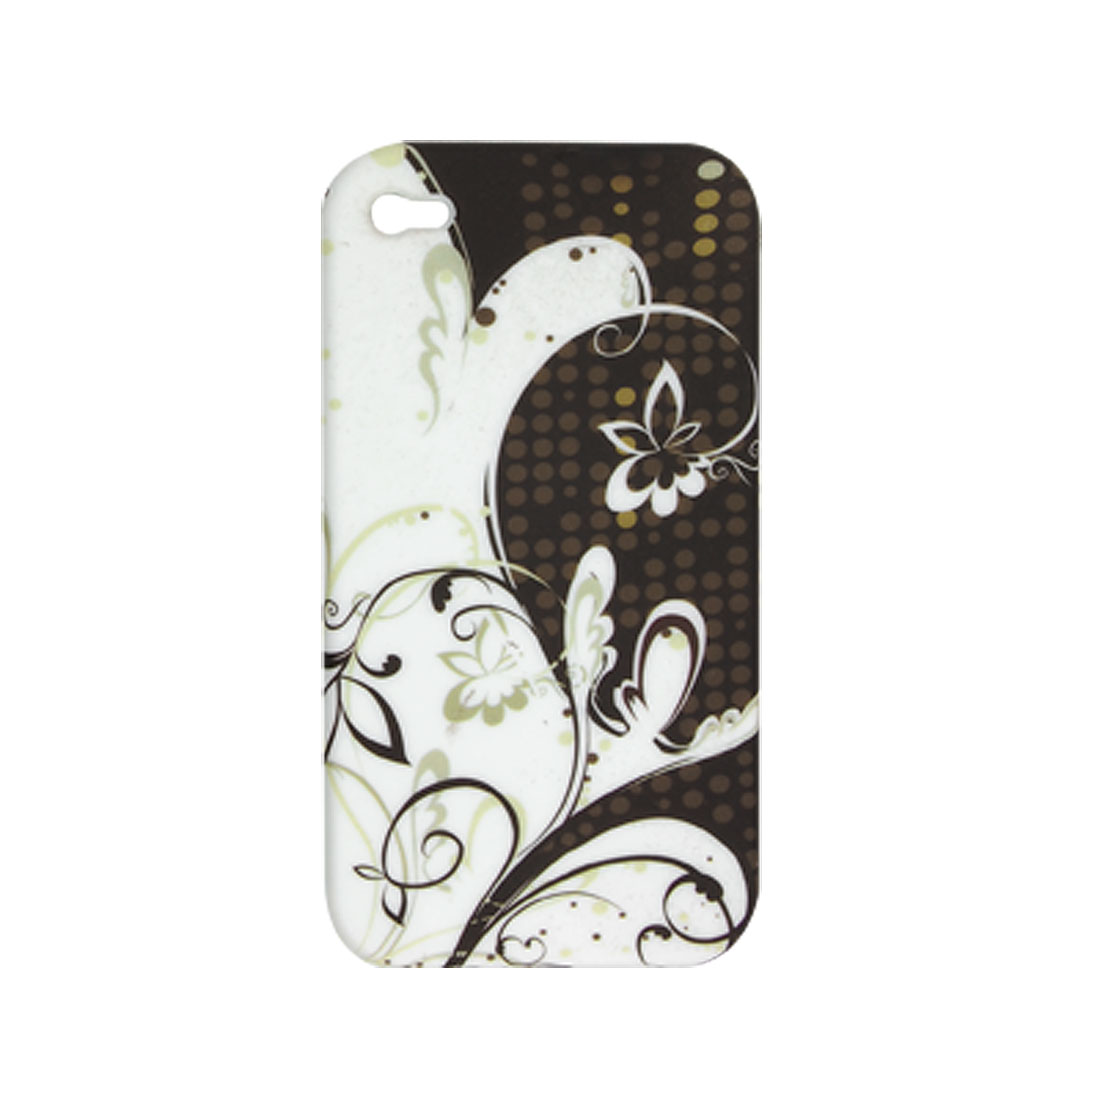 Rubberized Flower Print Soft Plastic Case Cover for Apple iPhone 4 4G